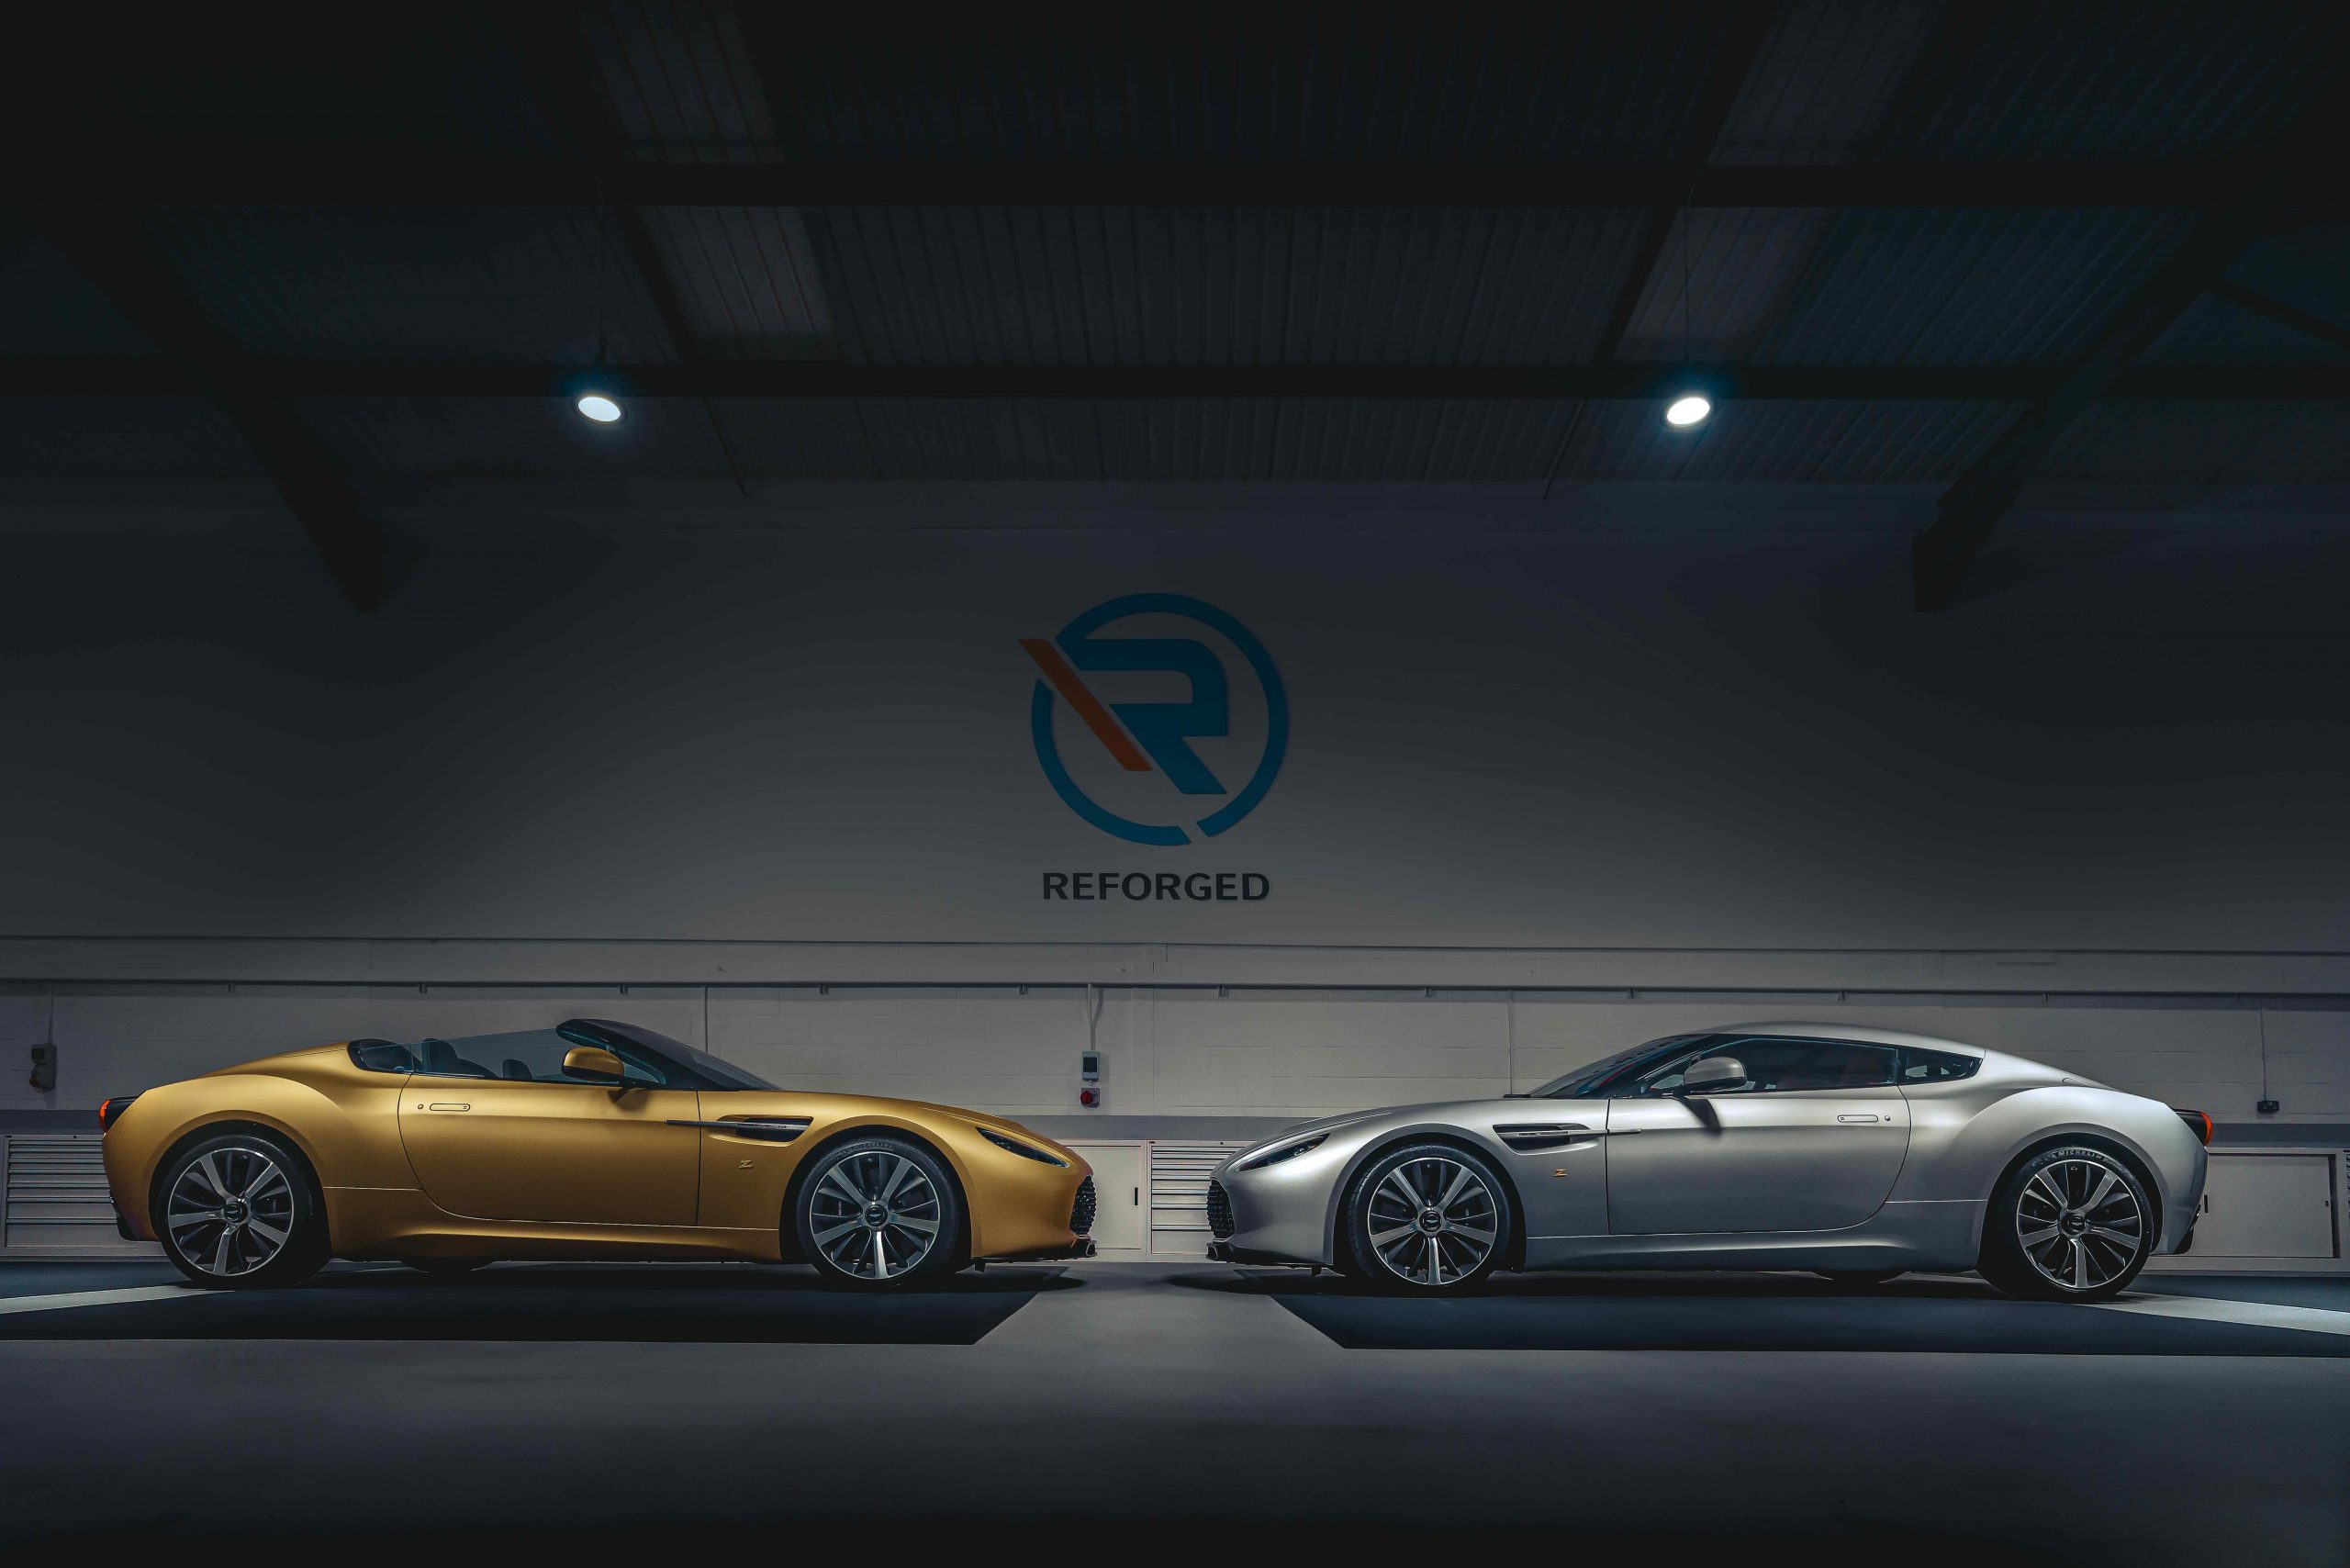 100 years of Zagato marked by R-Reforged Vantage V12